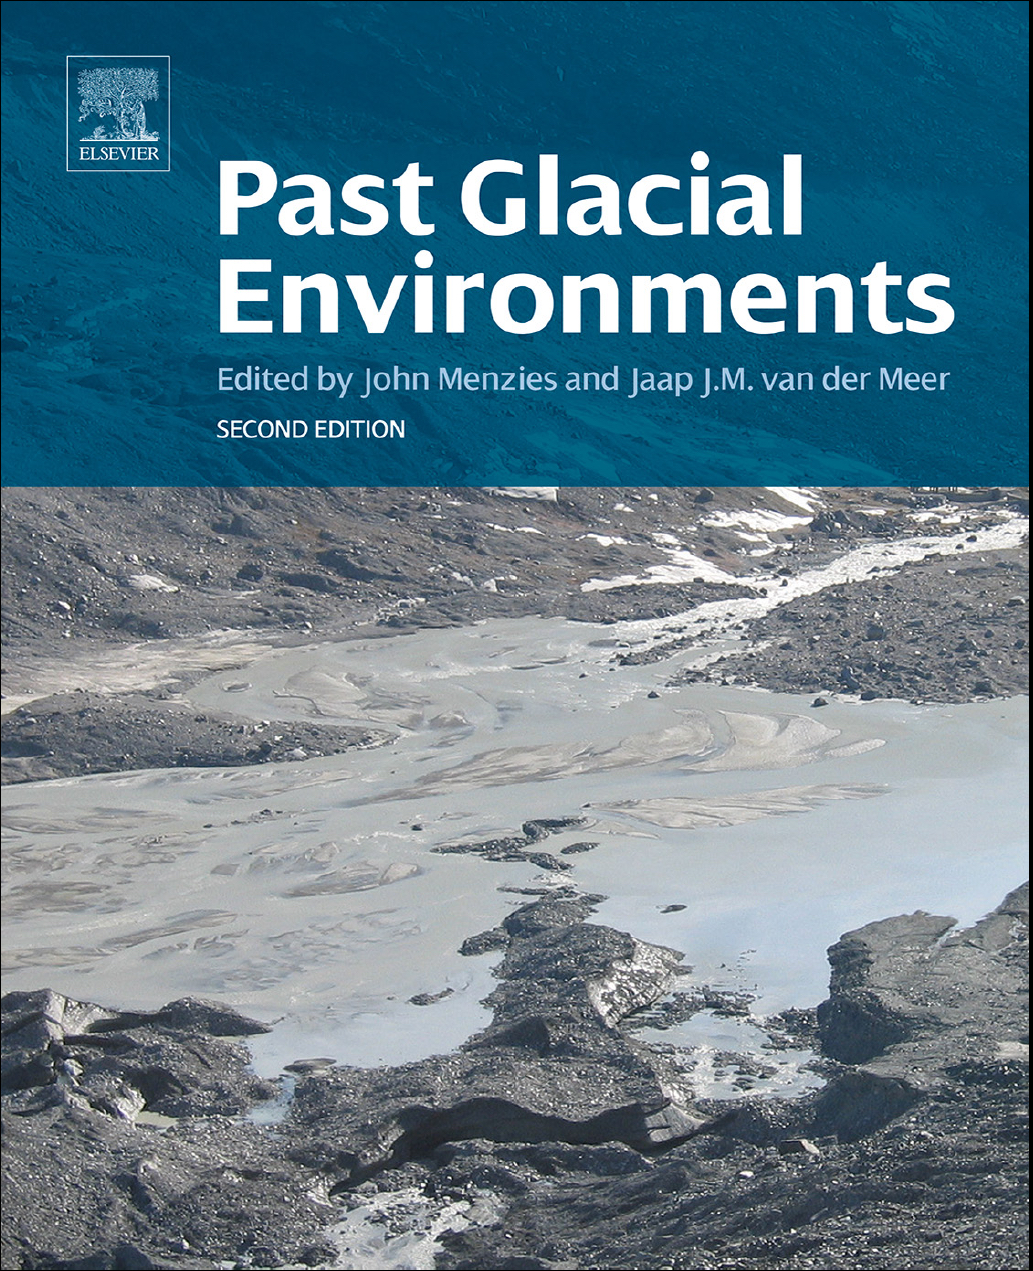 The second edition of the book Past Glacial Environments by John Menzies &  Jaap van der Meer (ISBN: 978-0-08-100524-8) is published by Elsevier.